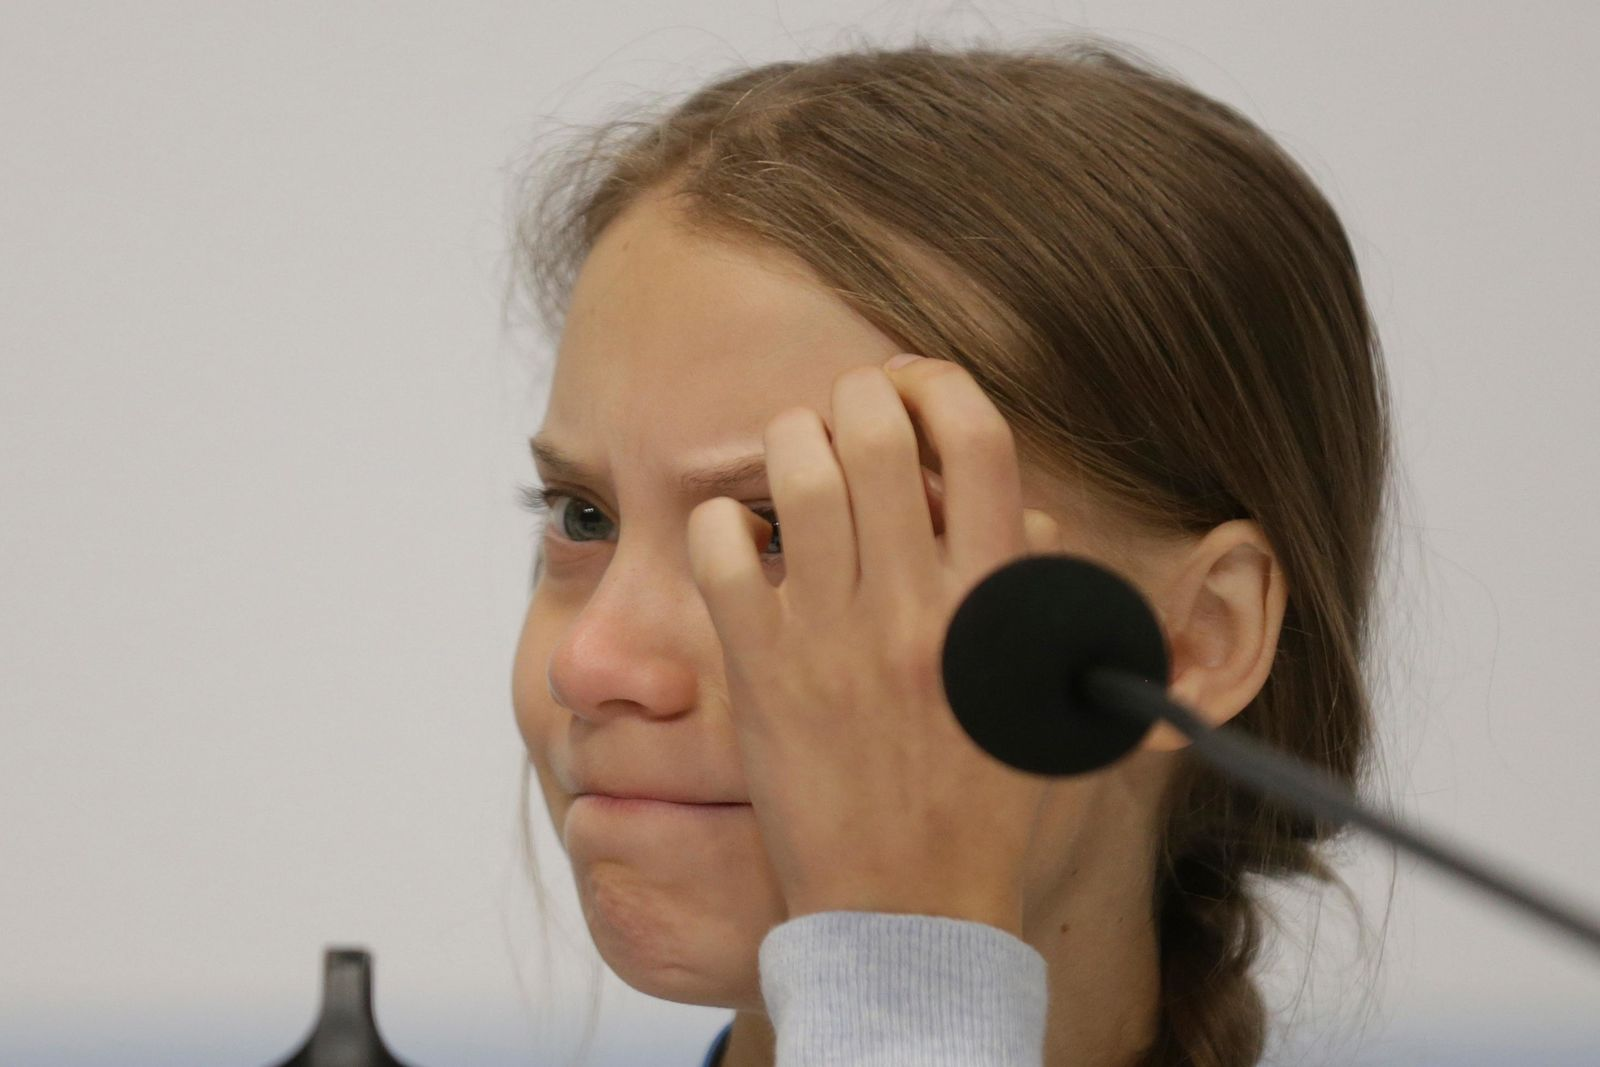 Climate activist Greta Thunberg takes part in a news conference at the COP25 climate summit in Madrid, Spain, Monday, Dec. 9, 2019.{ } (AP Photo/Andrea Comas)